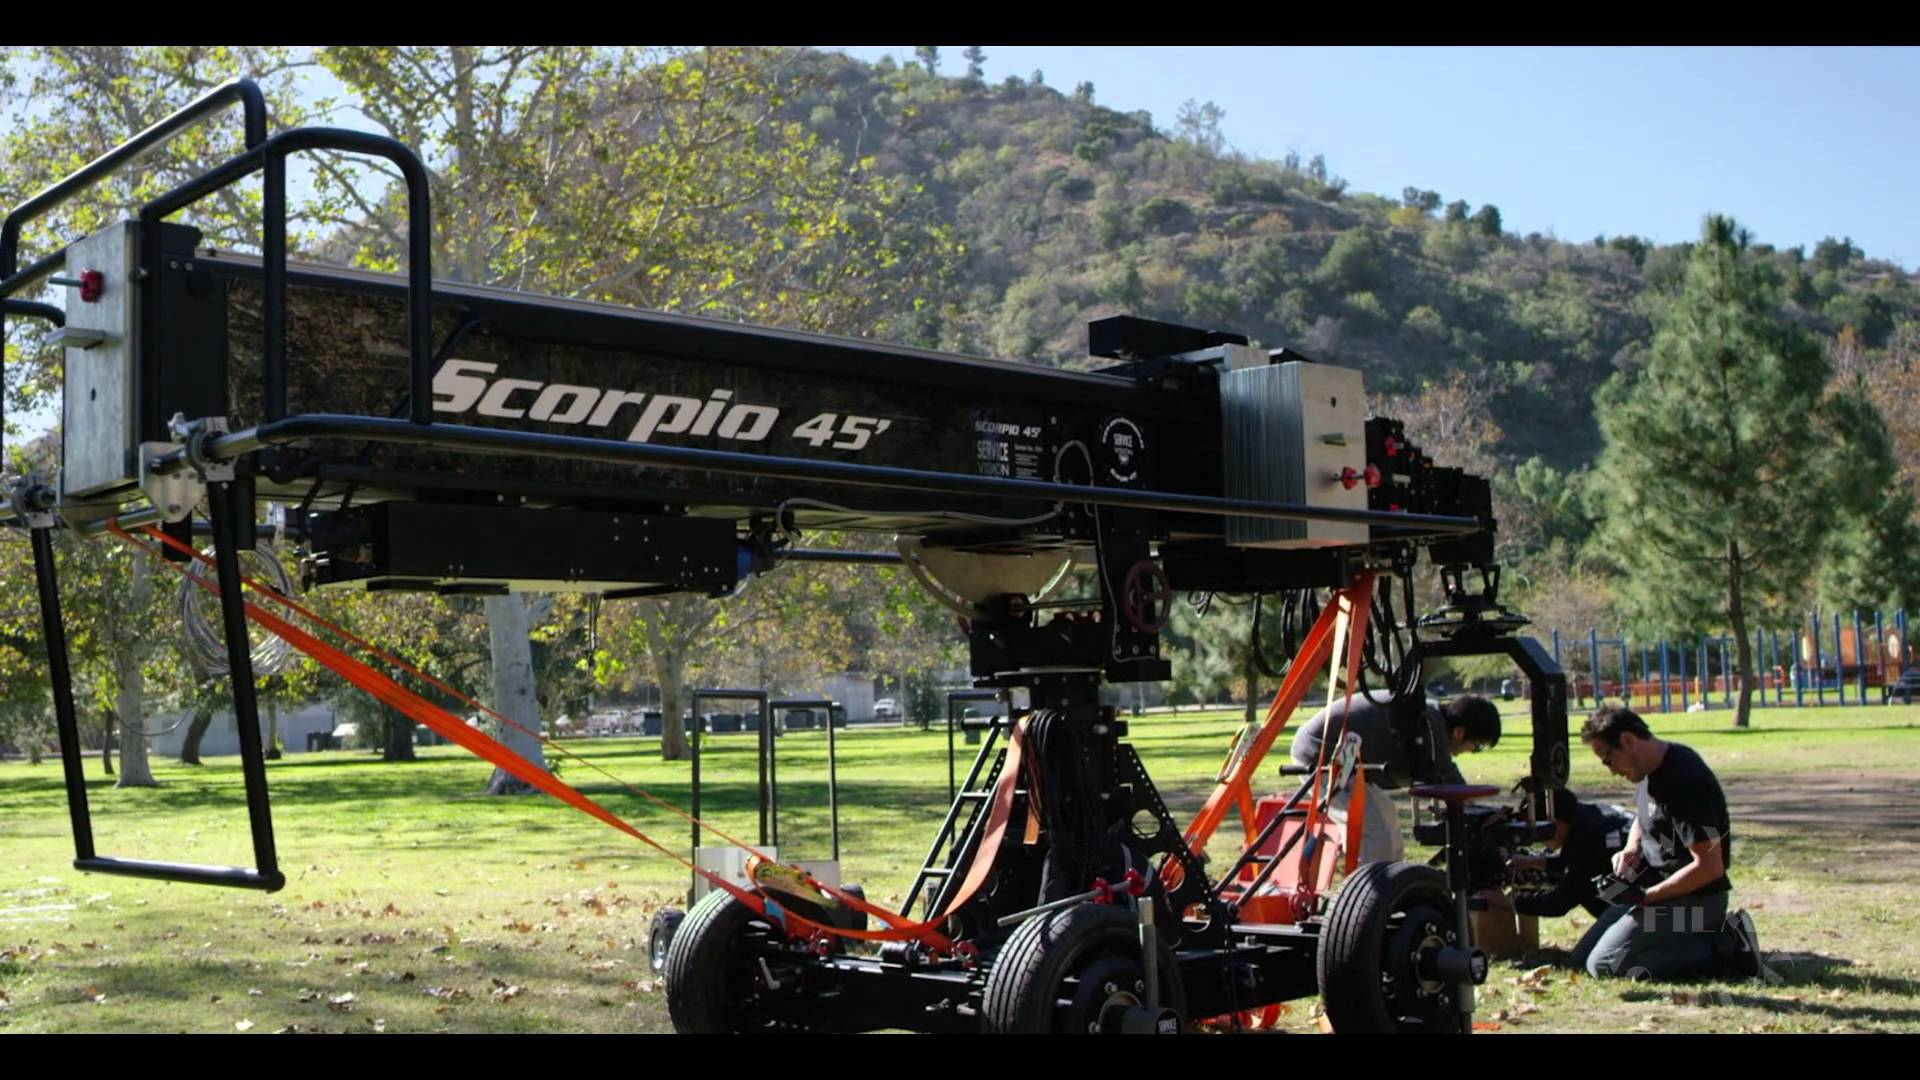 Scorpio Crane Workshop at New York Film Academy